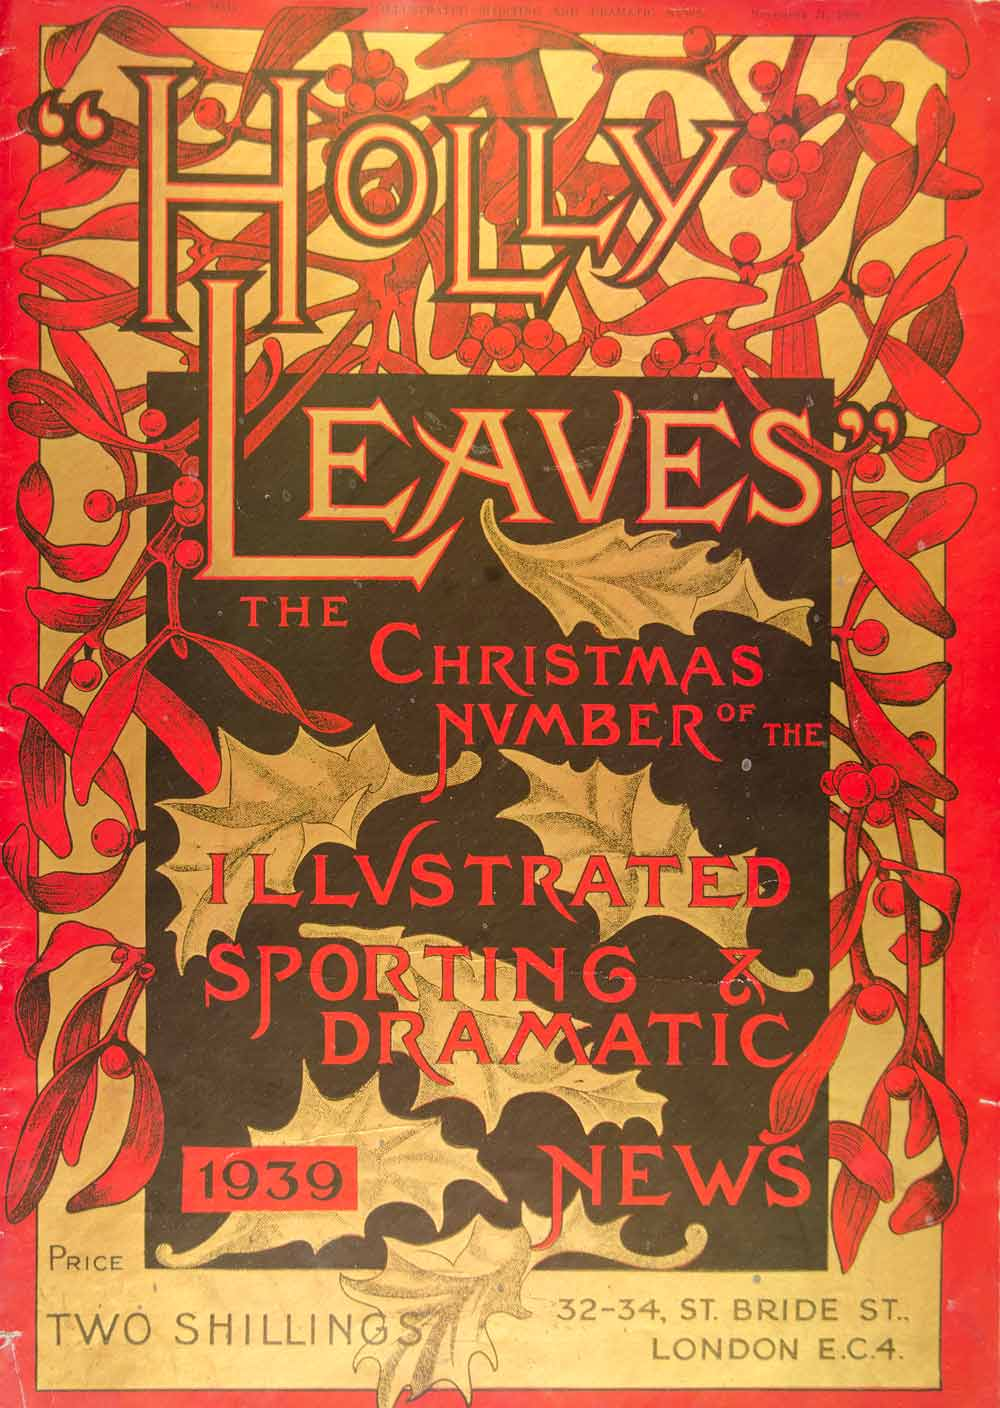 1939 Lithograph Cover Holly Leaves Illustrated Sporting Dramatic News YHL1